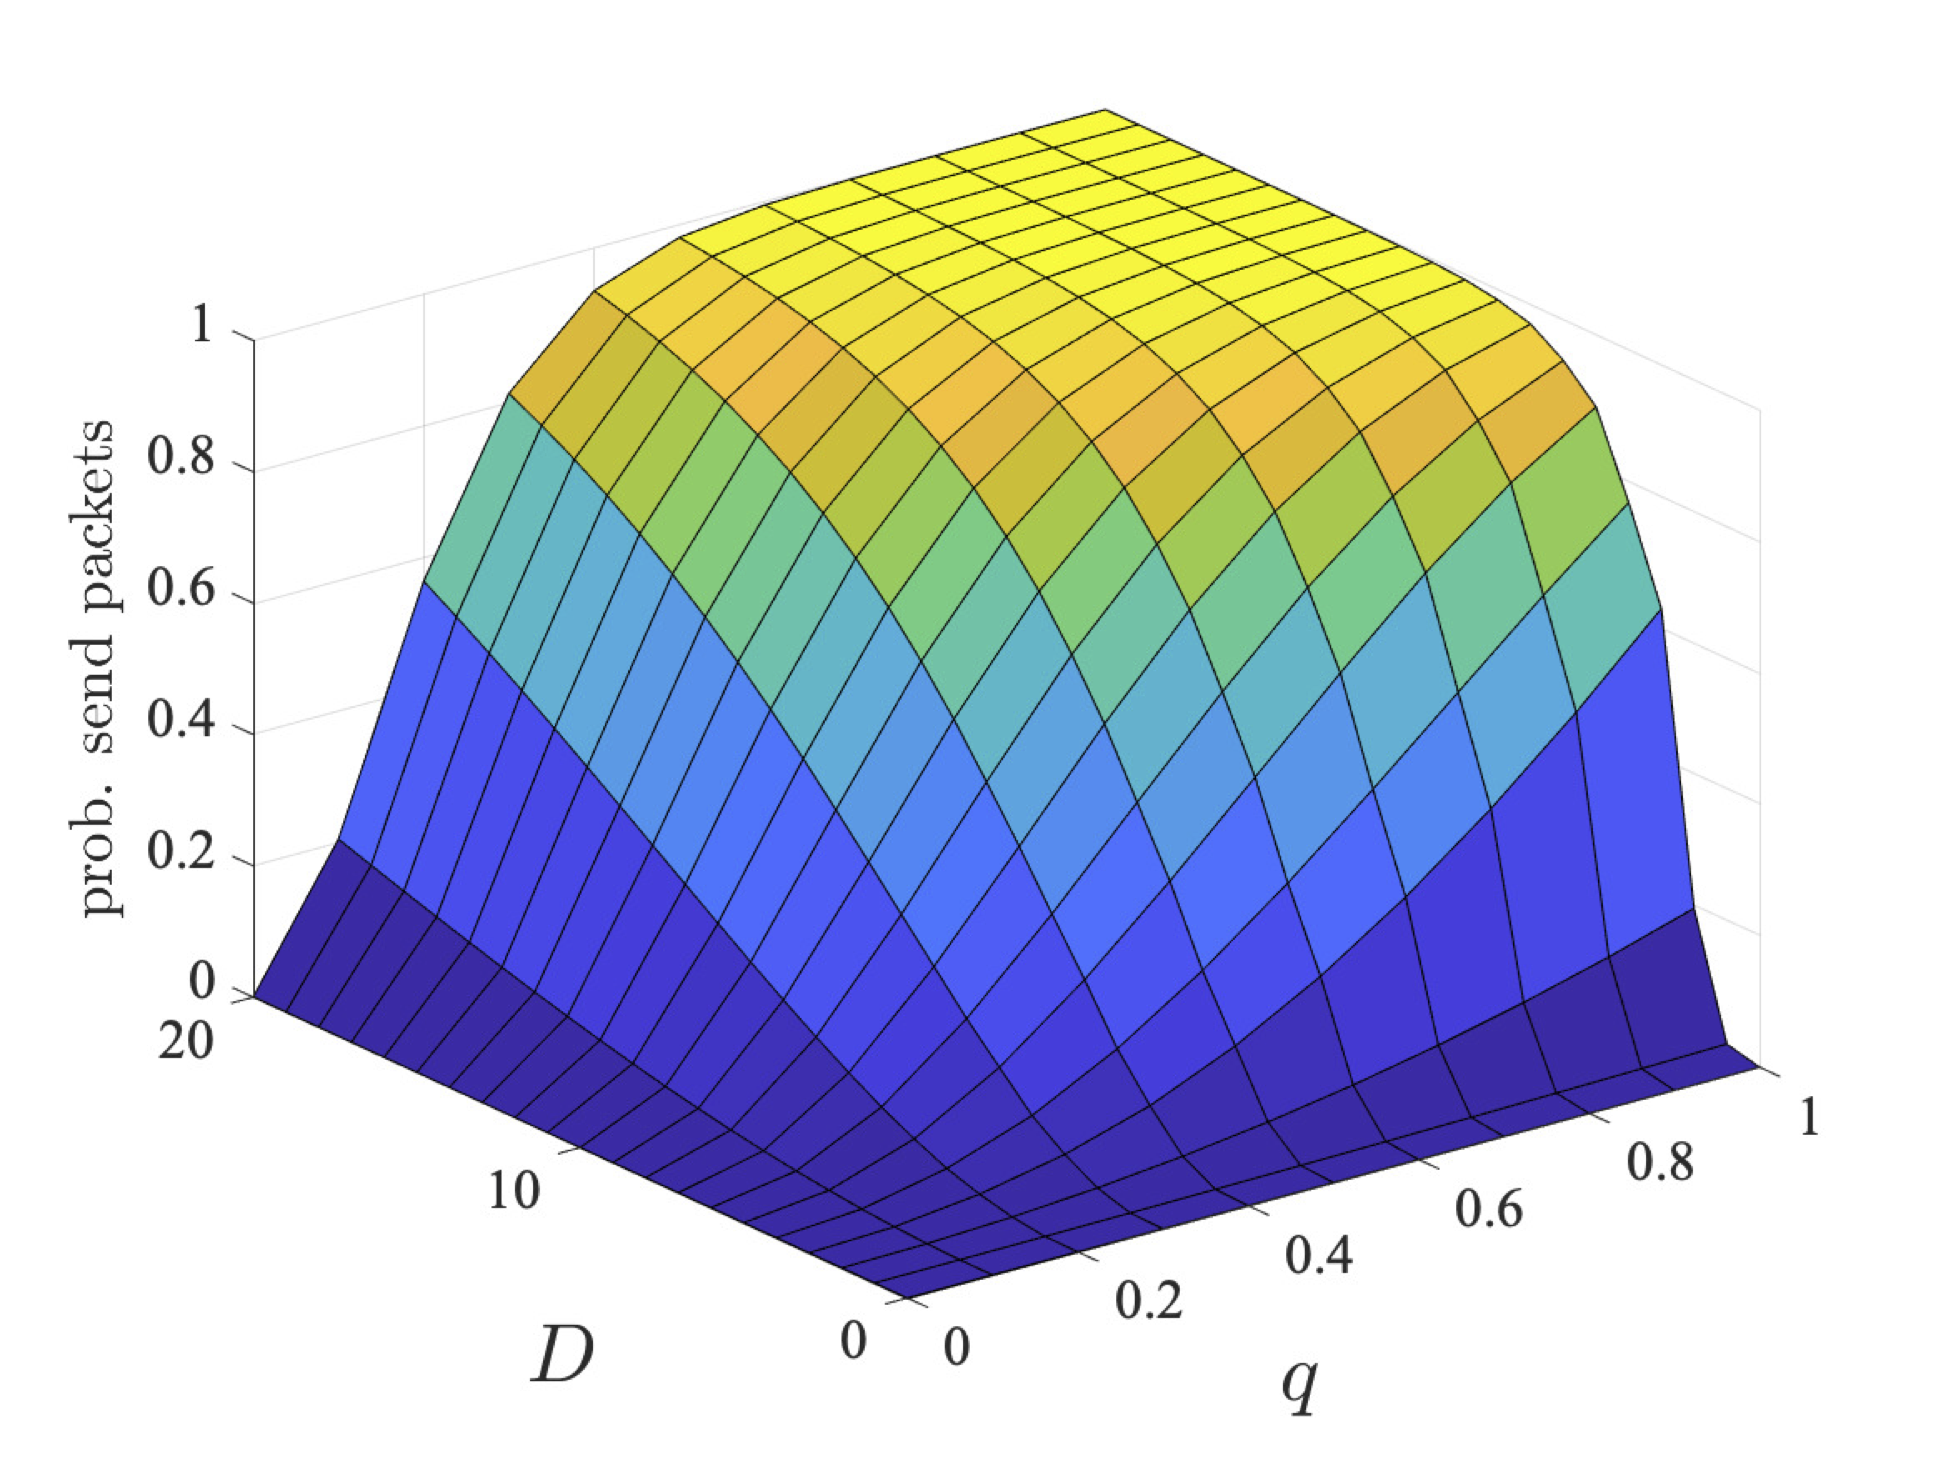 plot: maximum probability users 2 and 3 can ensure they send their packets within a deadline (bcmax=1)